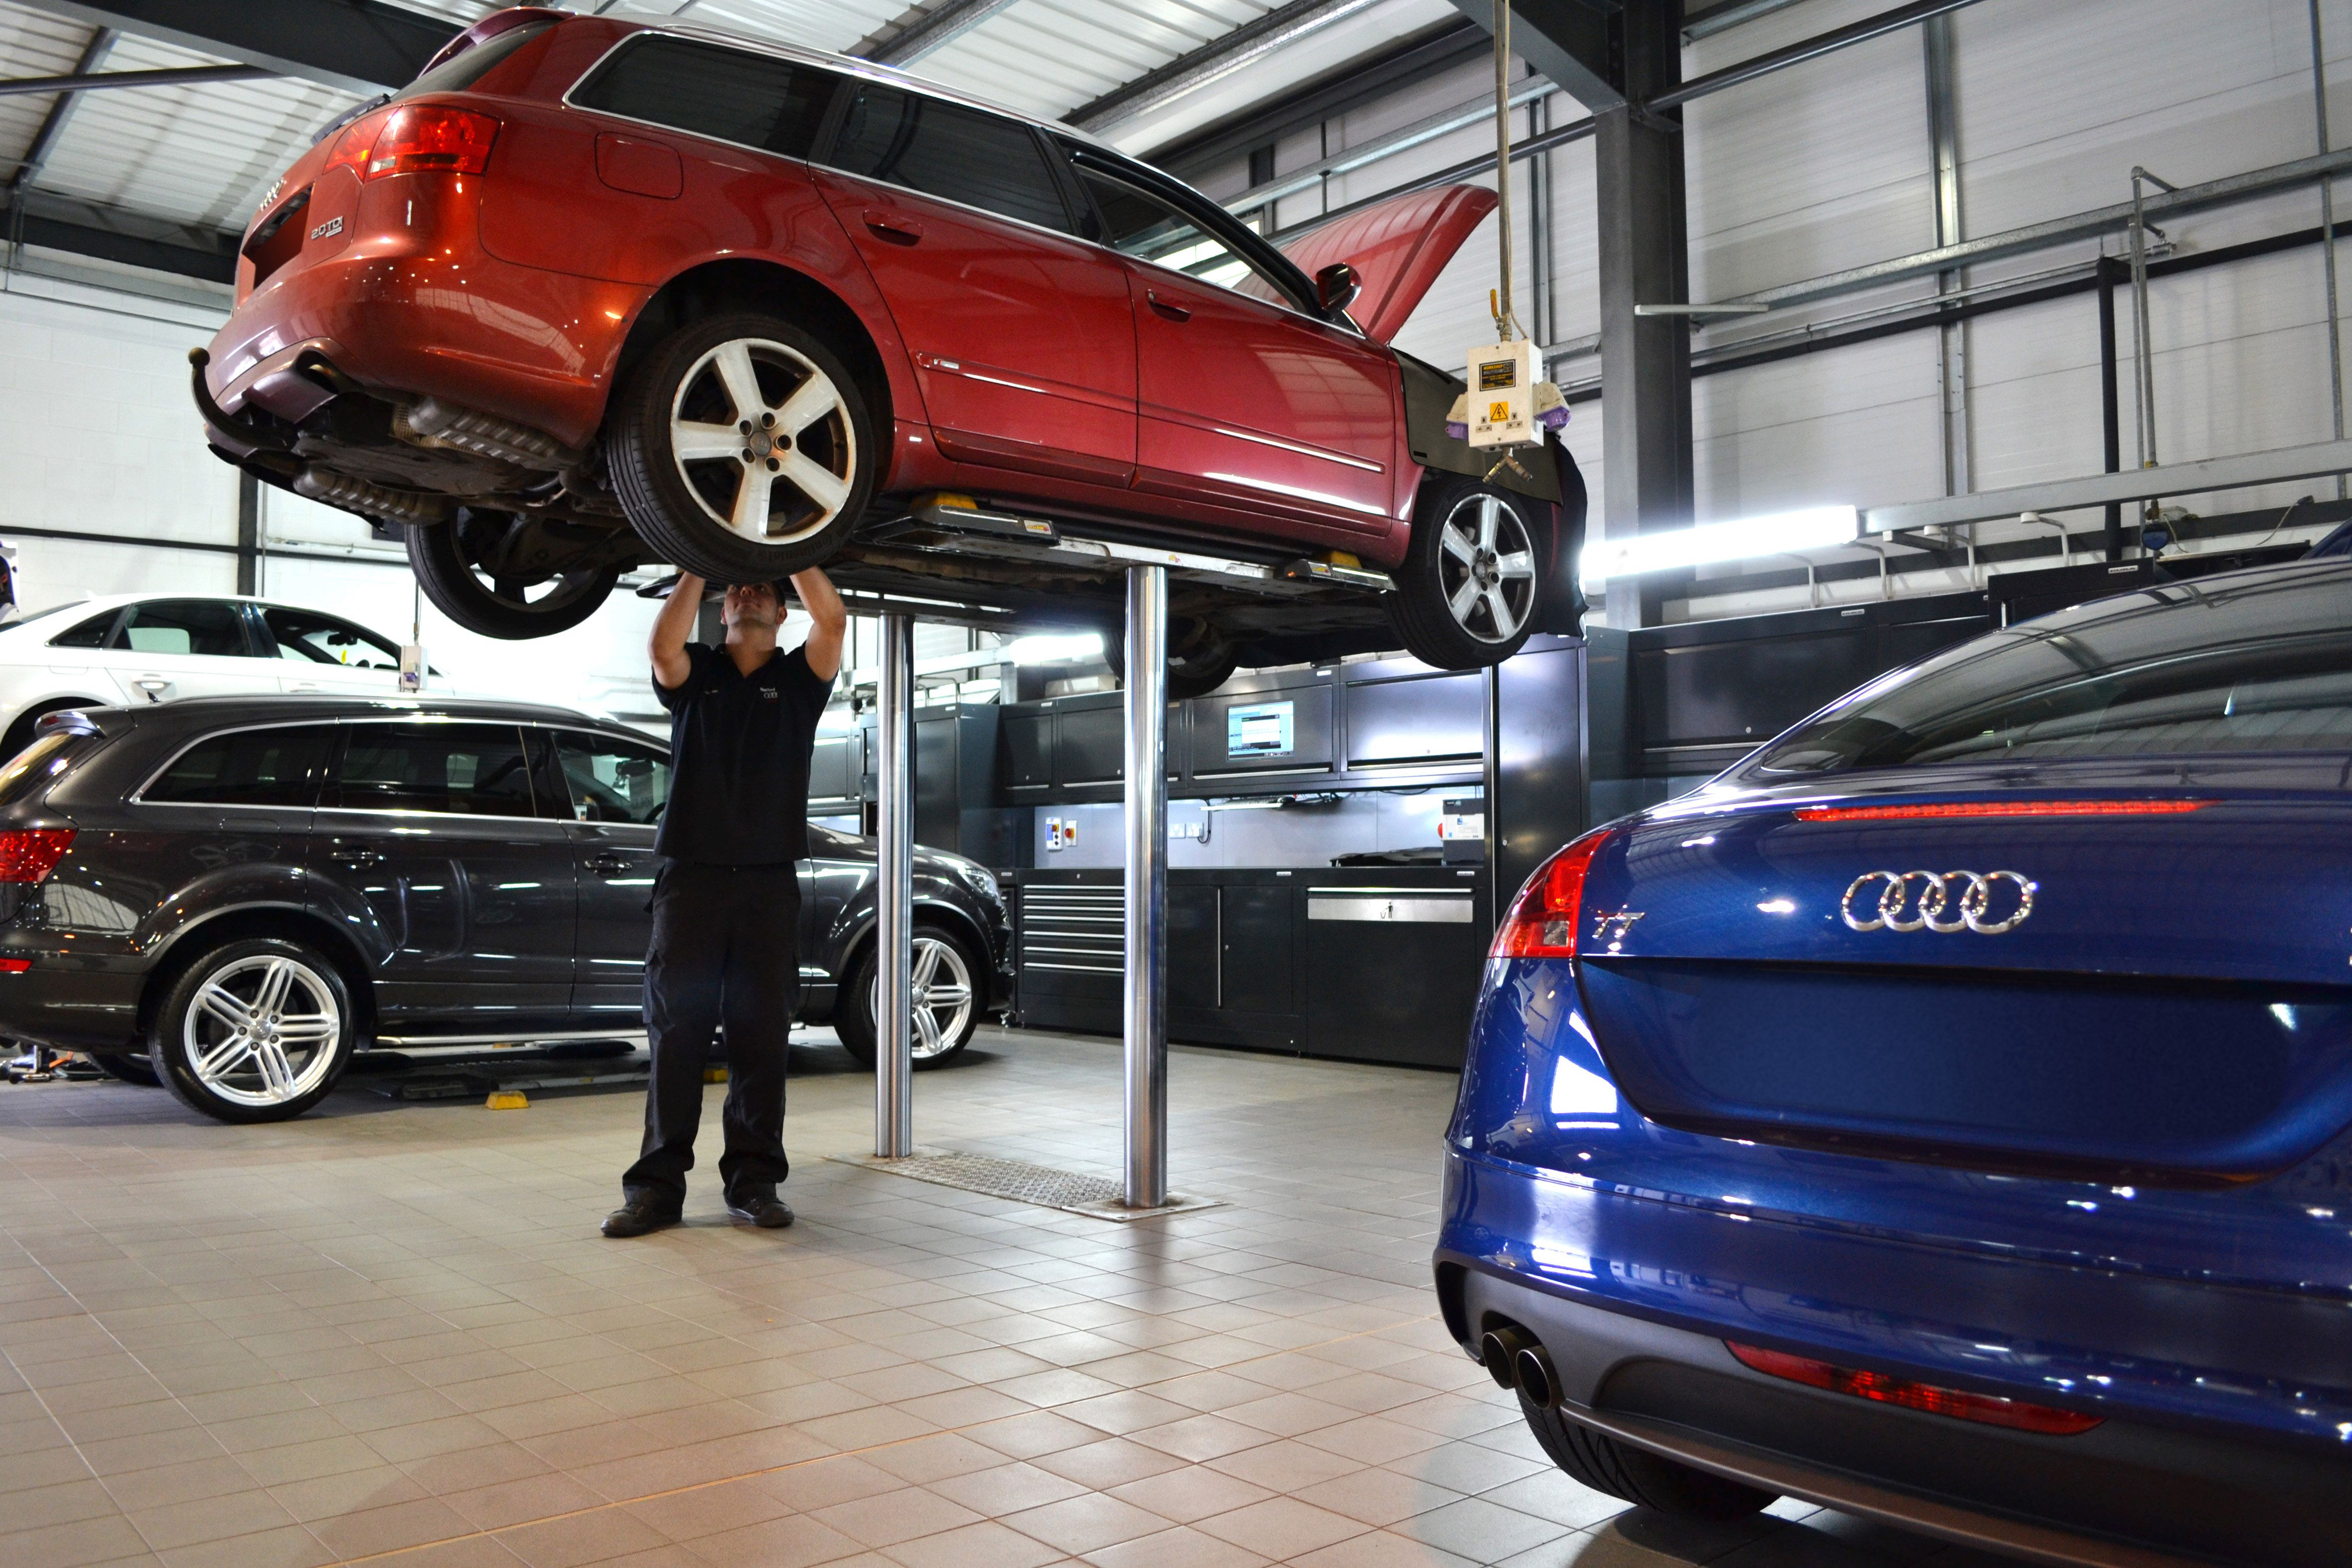 Red metallic Audi on ramp being worked on by Technician